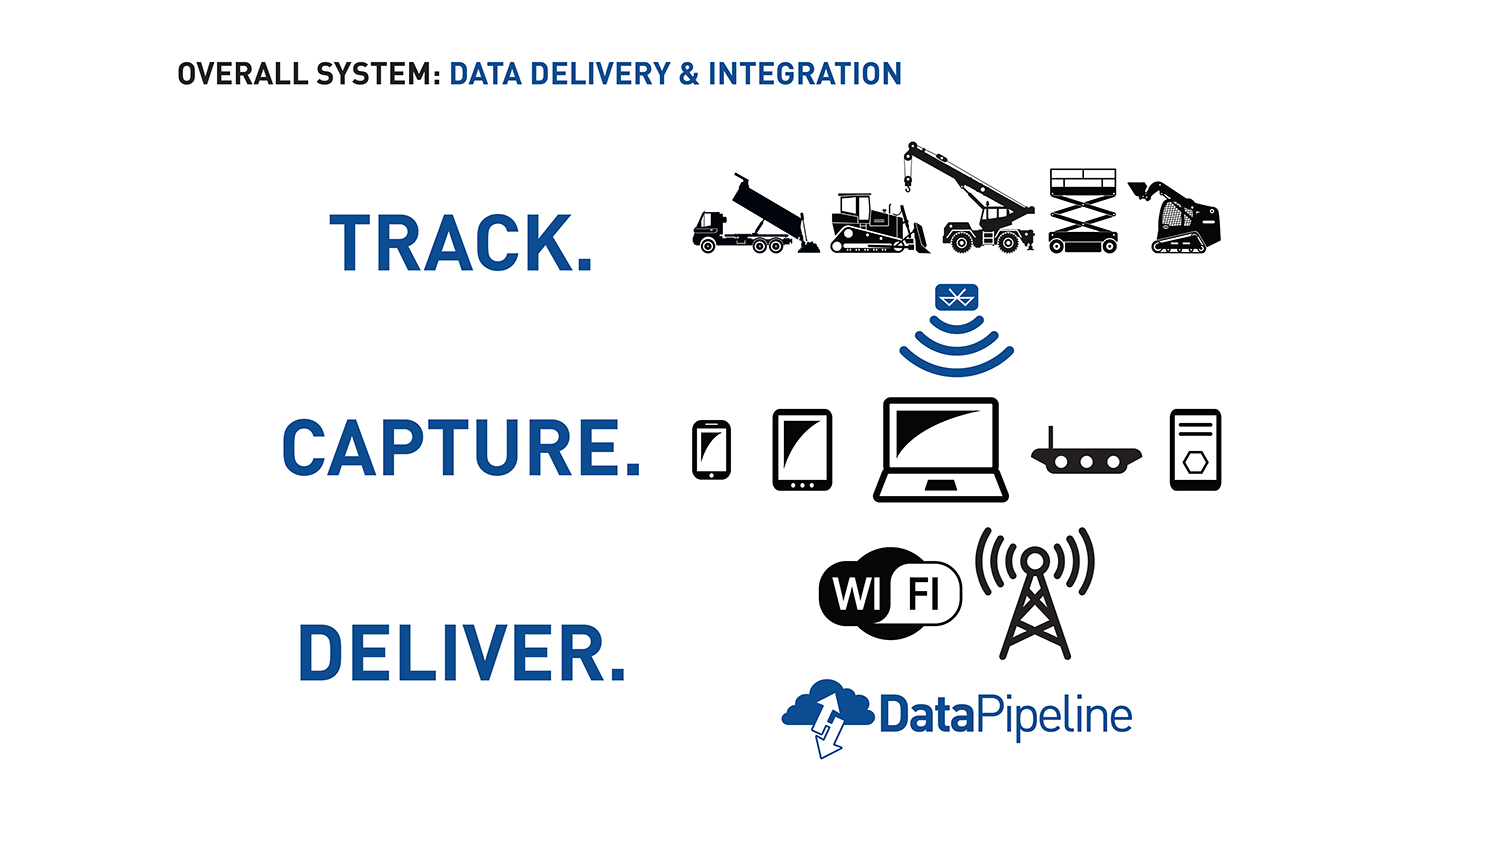 Data Delivery & Integration Diagram